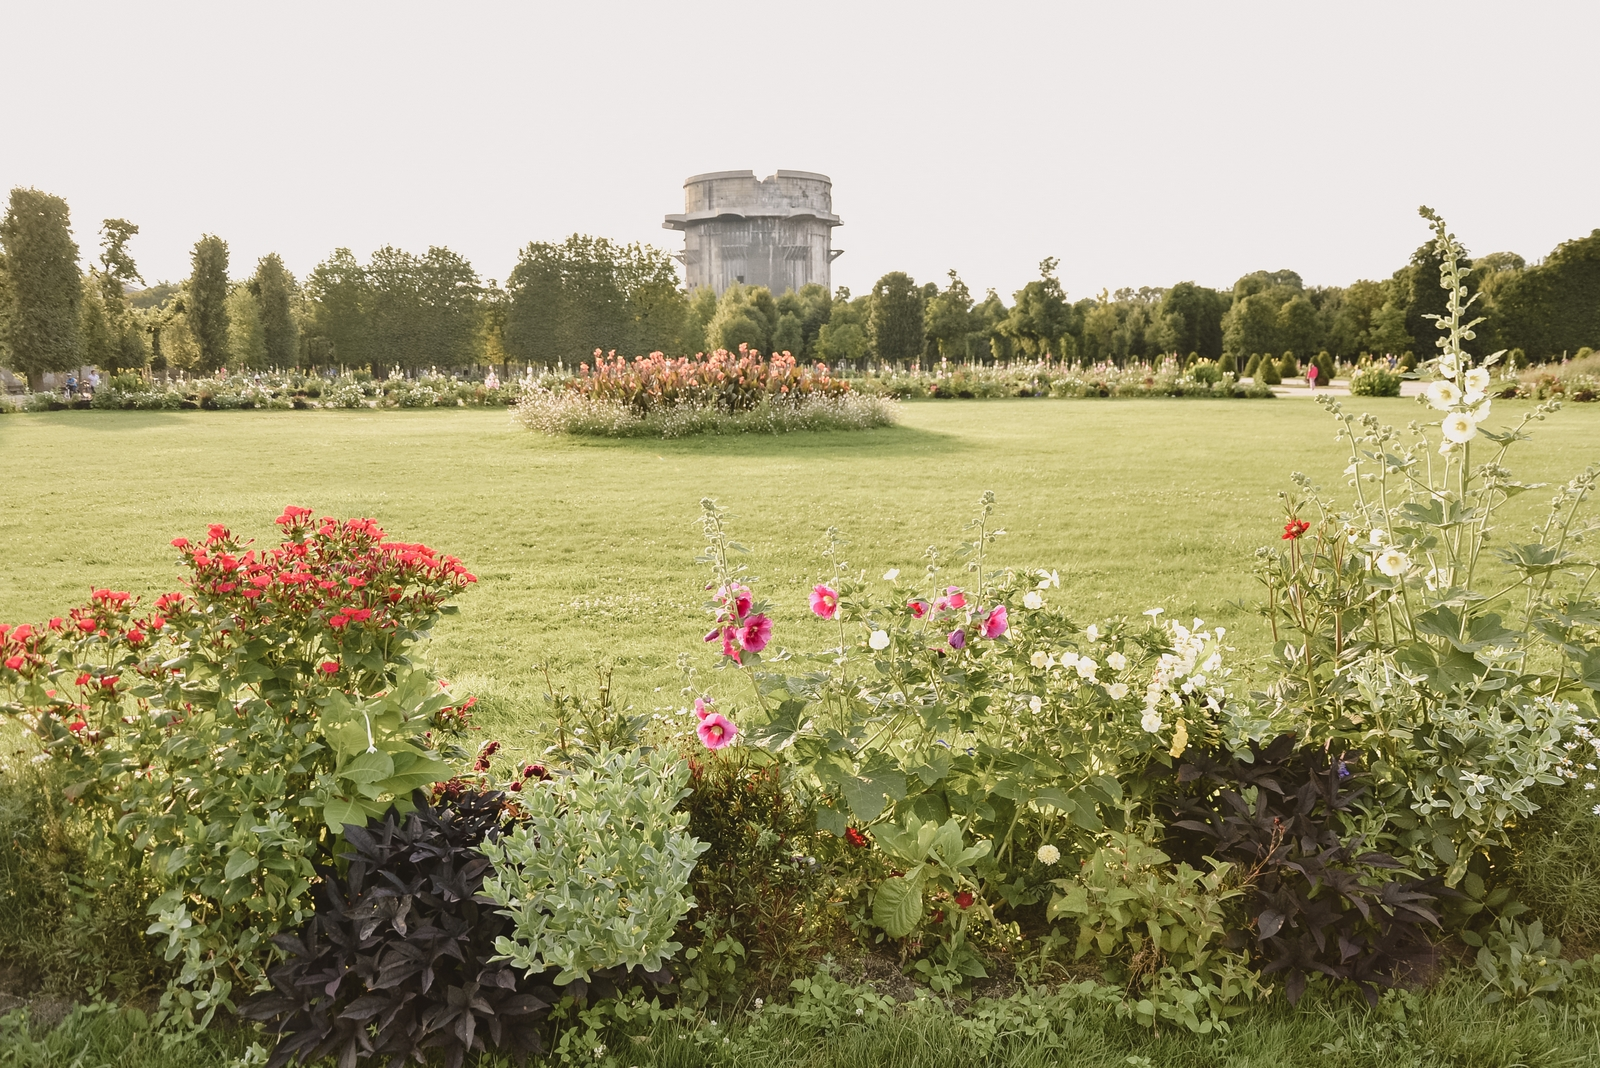 Vienna Flak Tower in Augarten Park, one of the top 10 strangest buildings in Vienna - from travel blog: http:/Epepa.eu